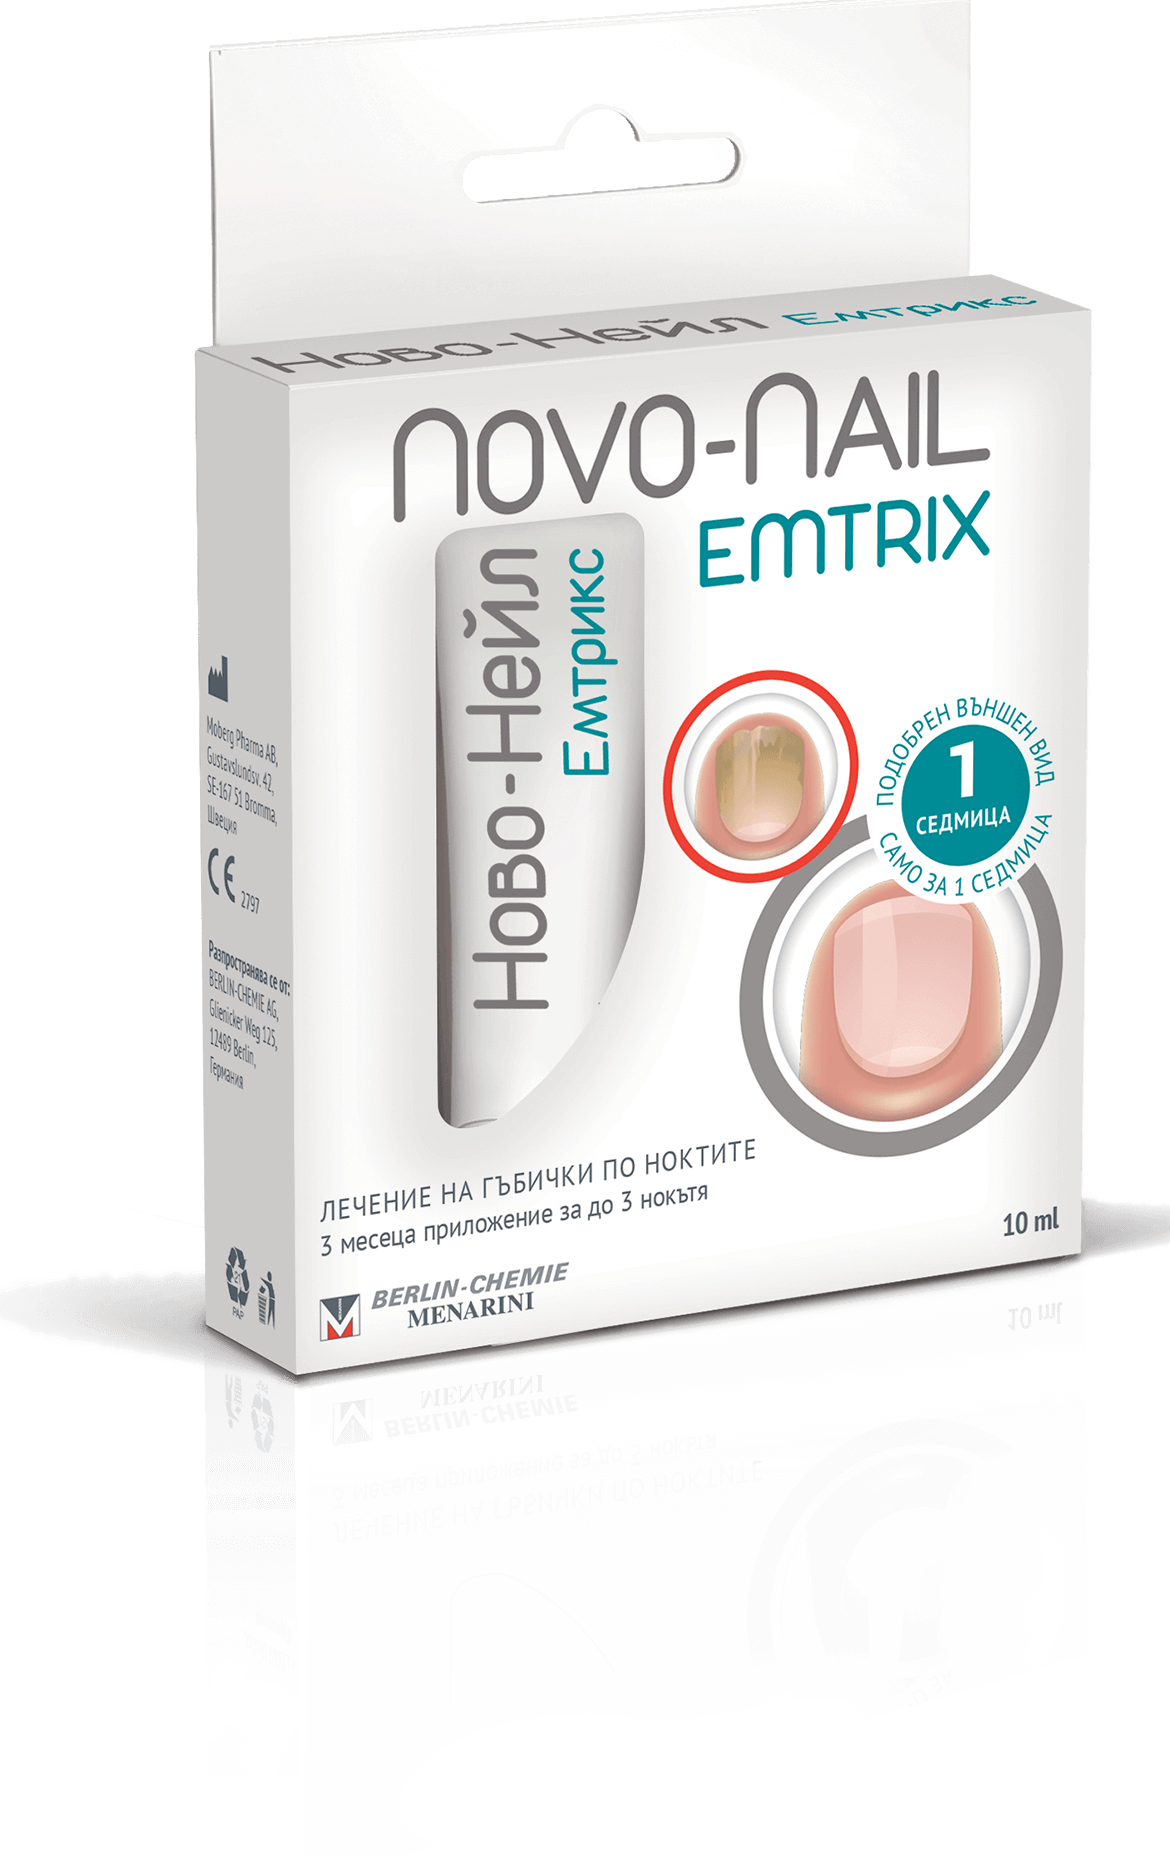 HOW TO USE Onychocid® EMTRIX